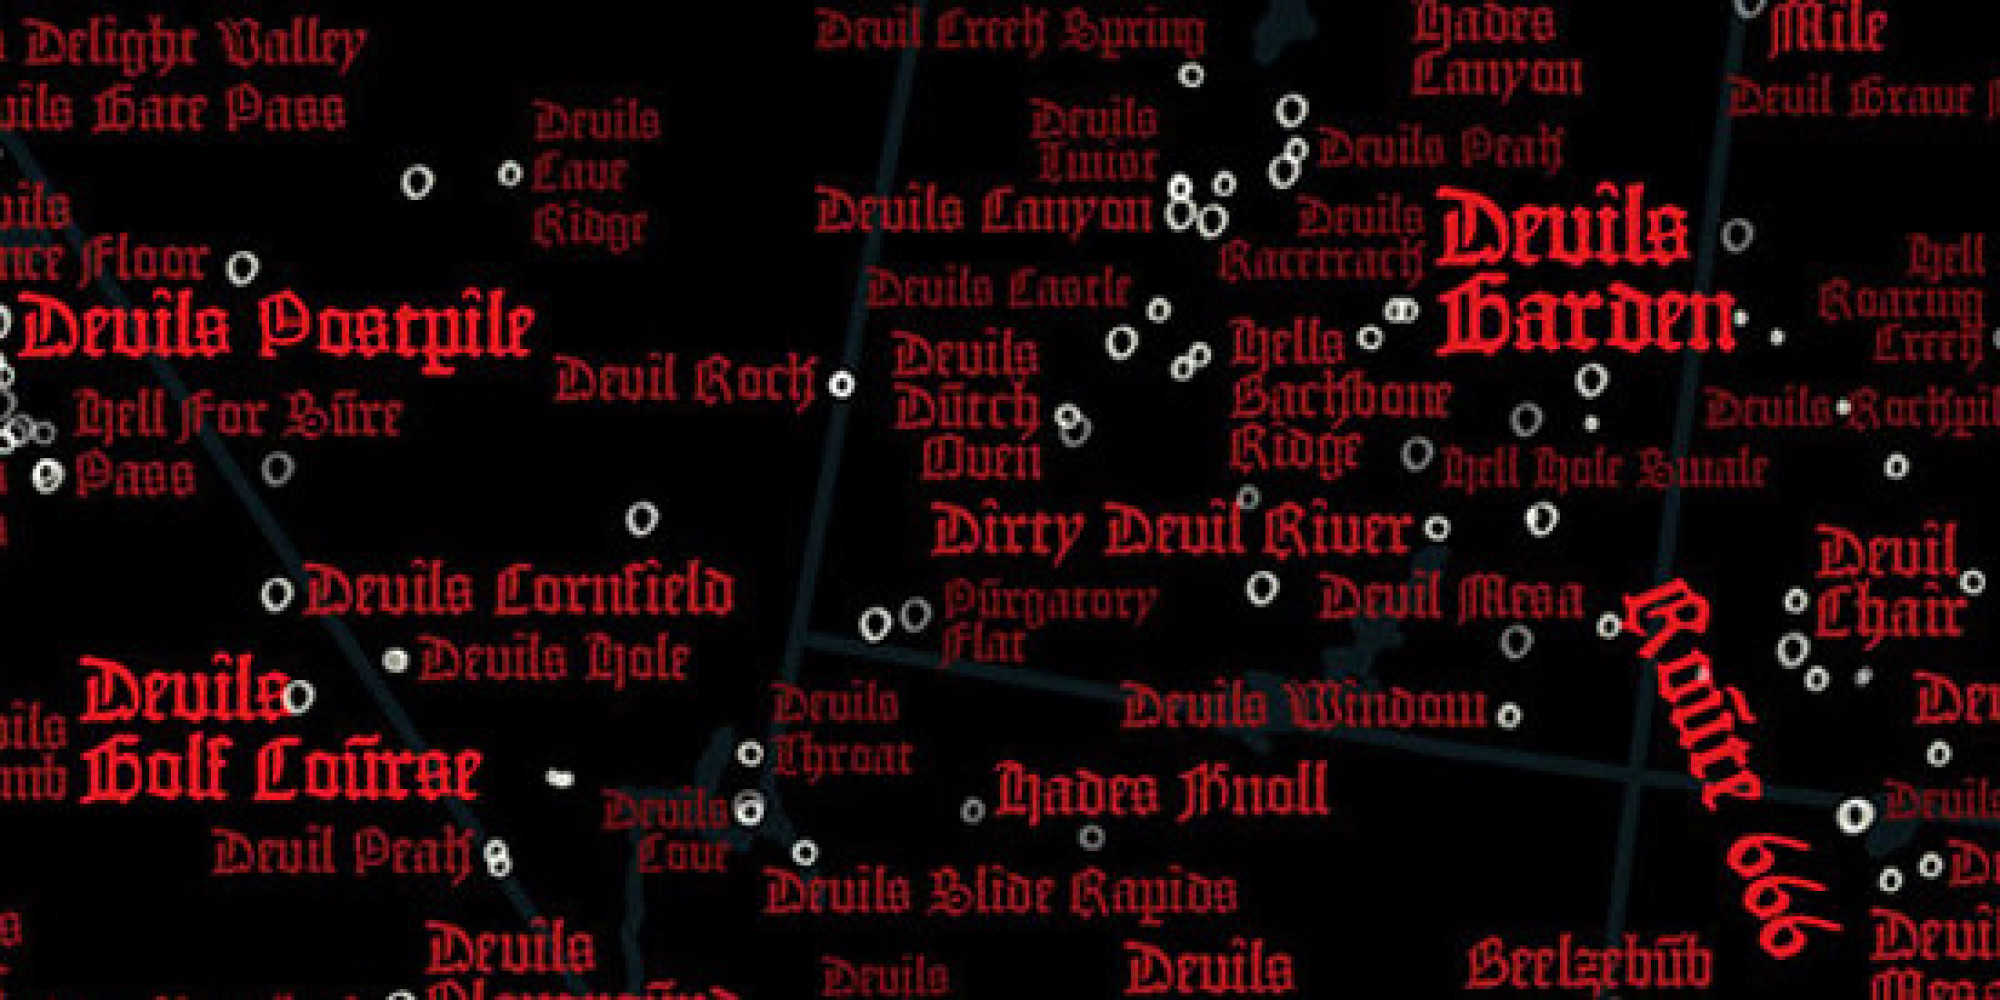 Devil Map Of United States Is A Diabolical Trip Through ...